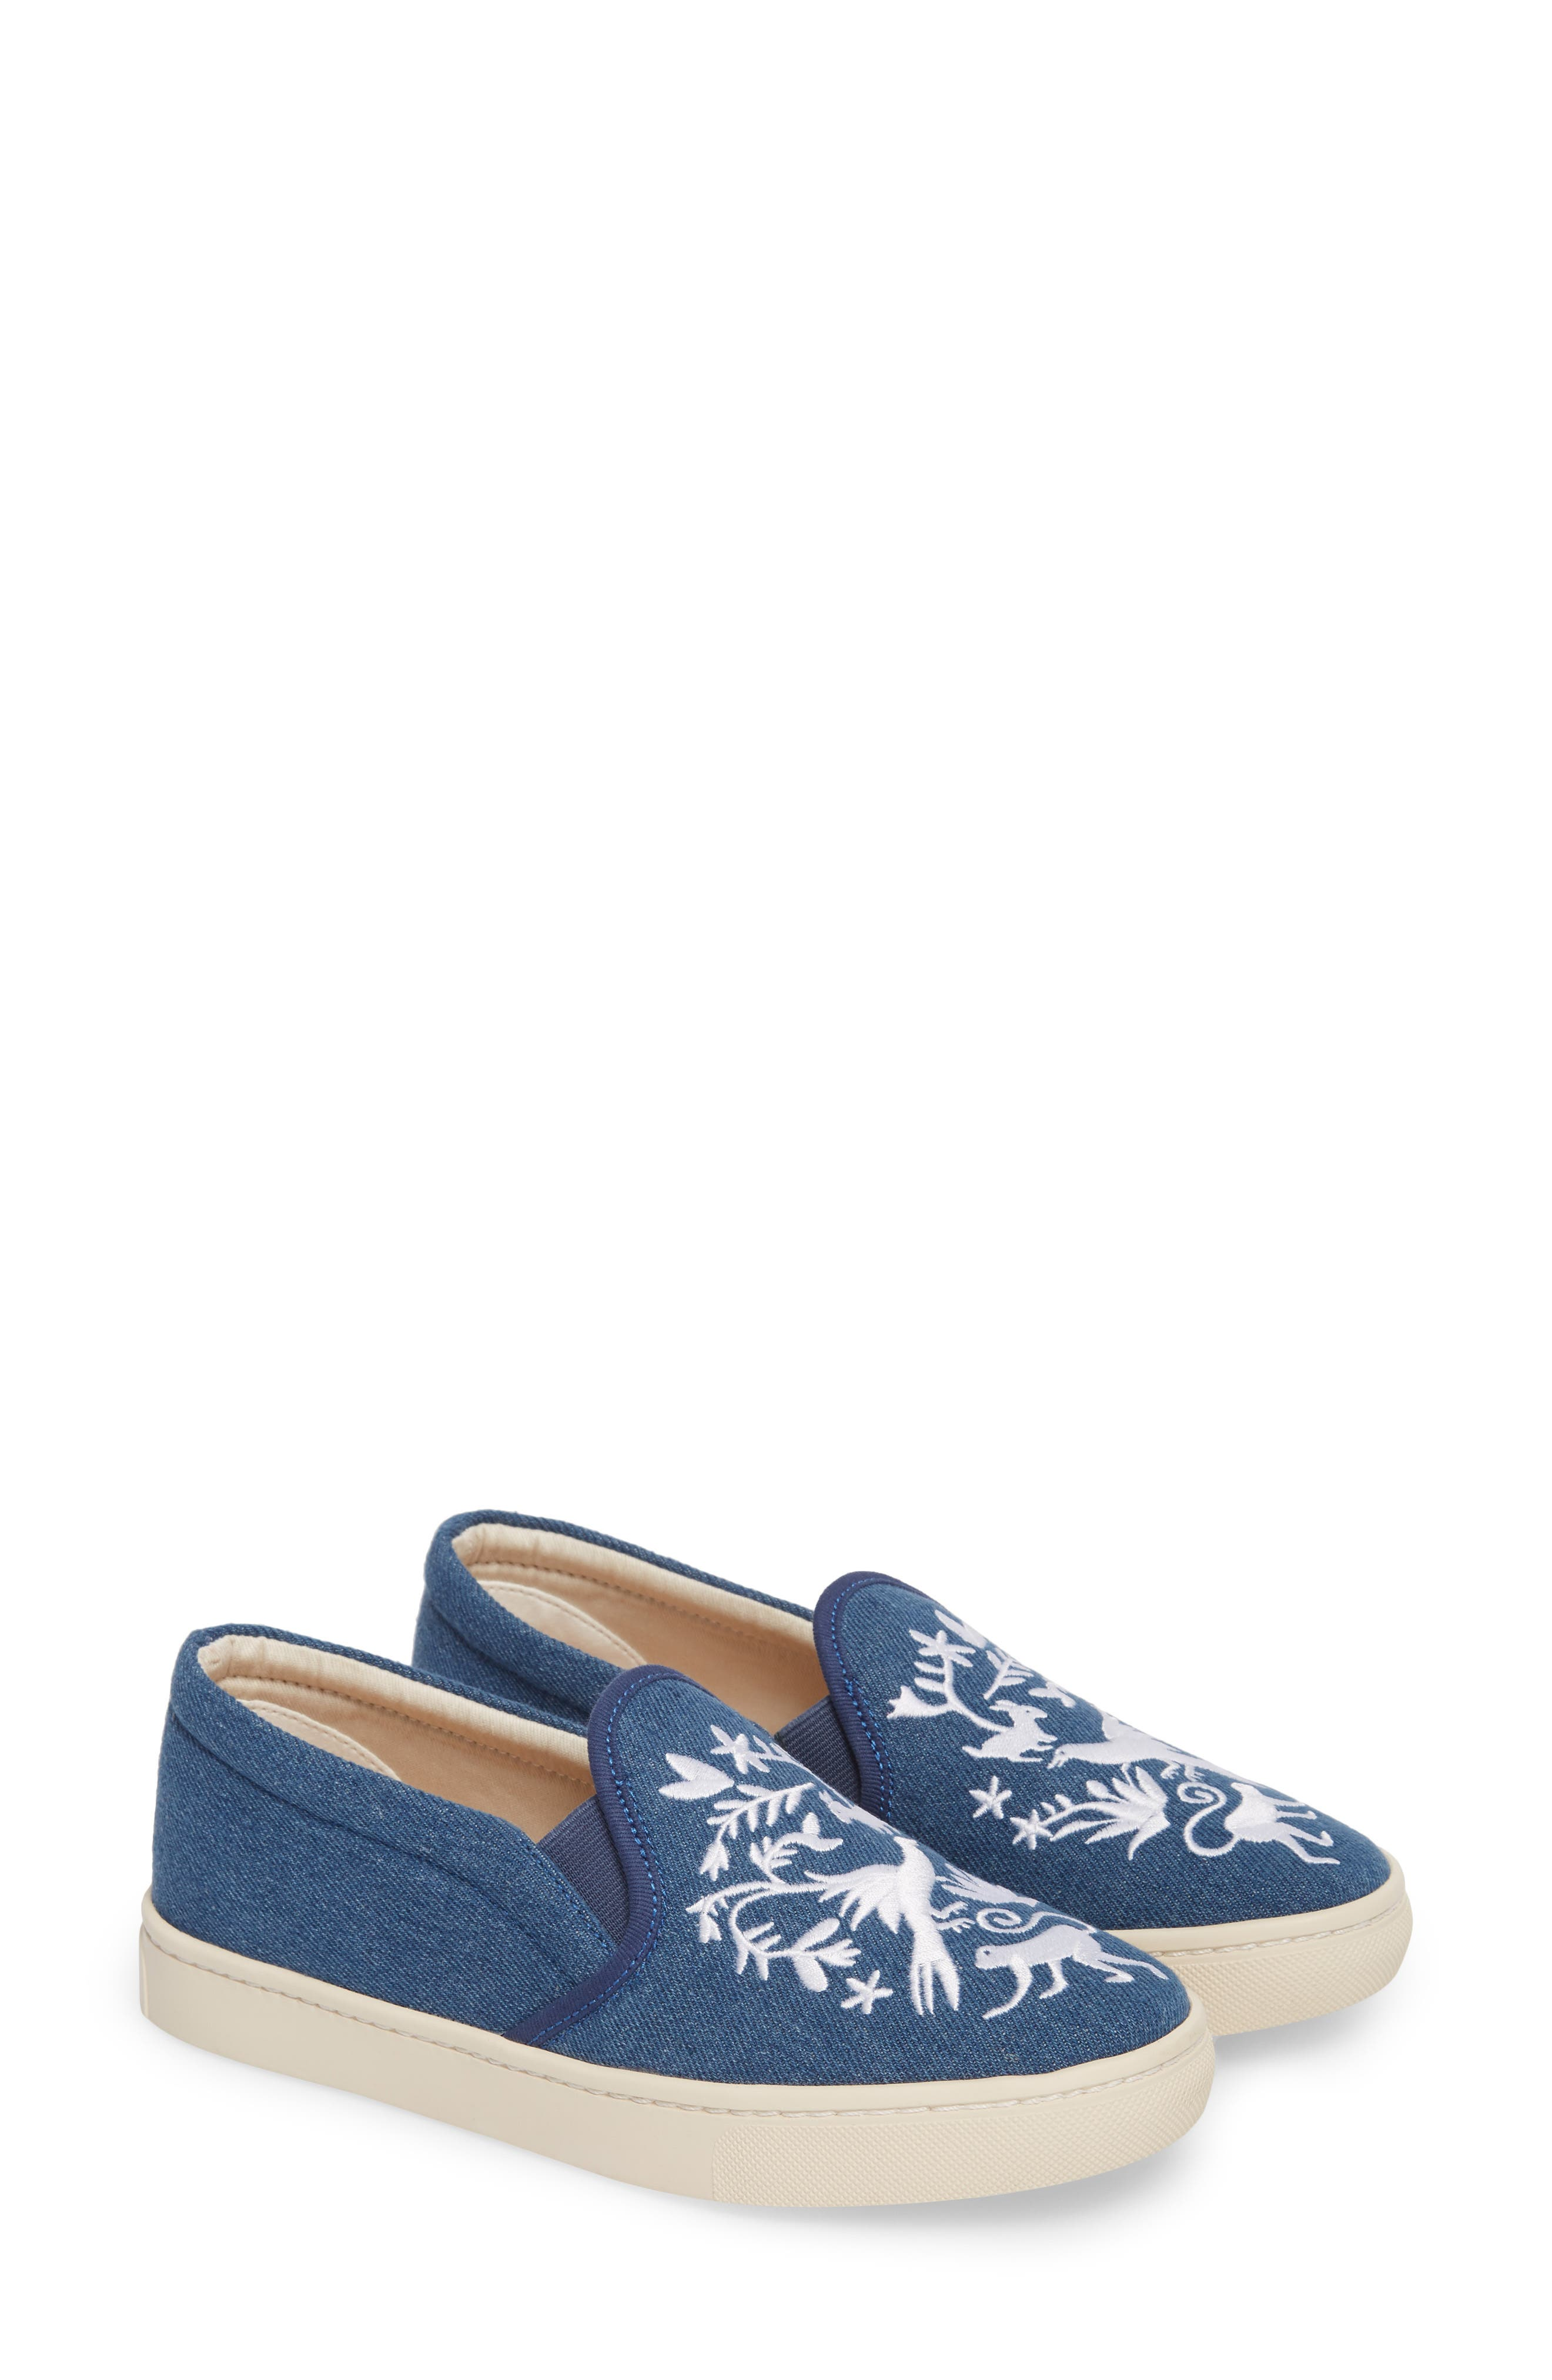 Otomi Slip-On Sneaker,                             Main thumbnail 1, color,                             426